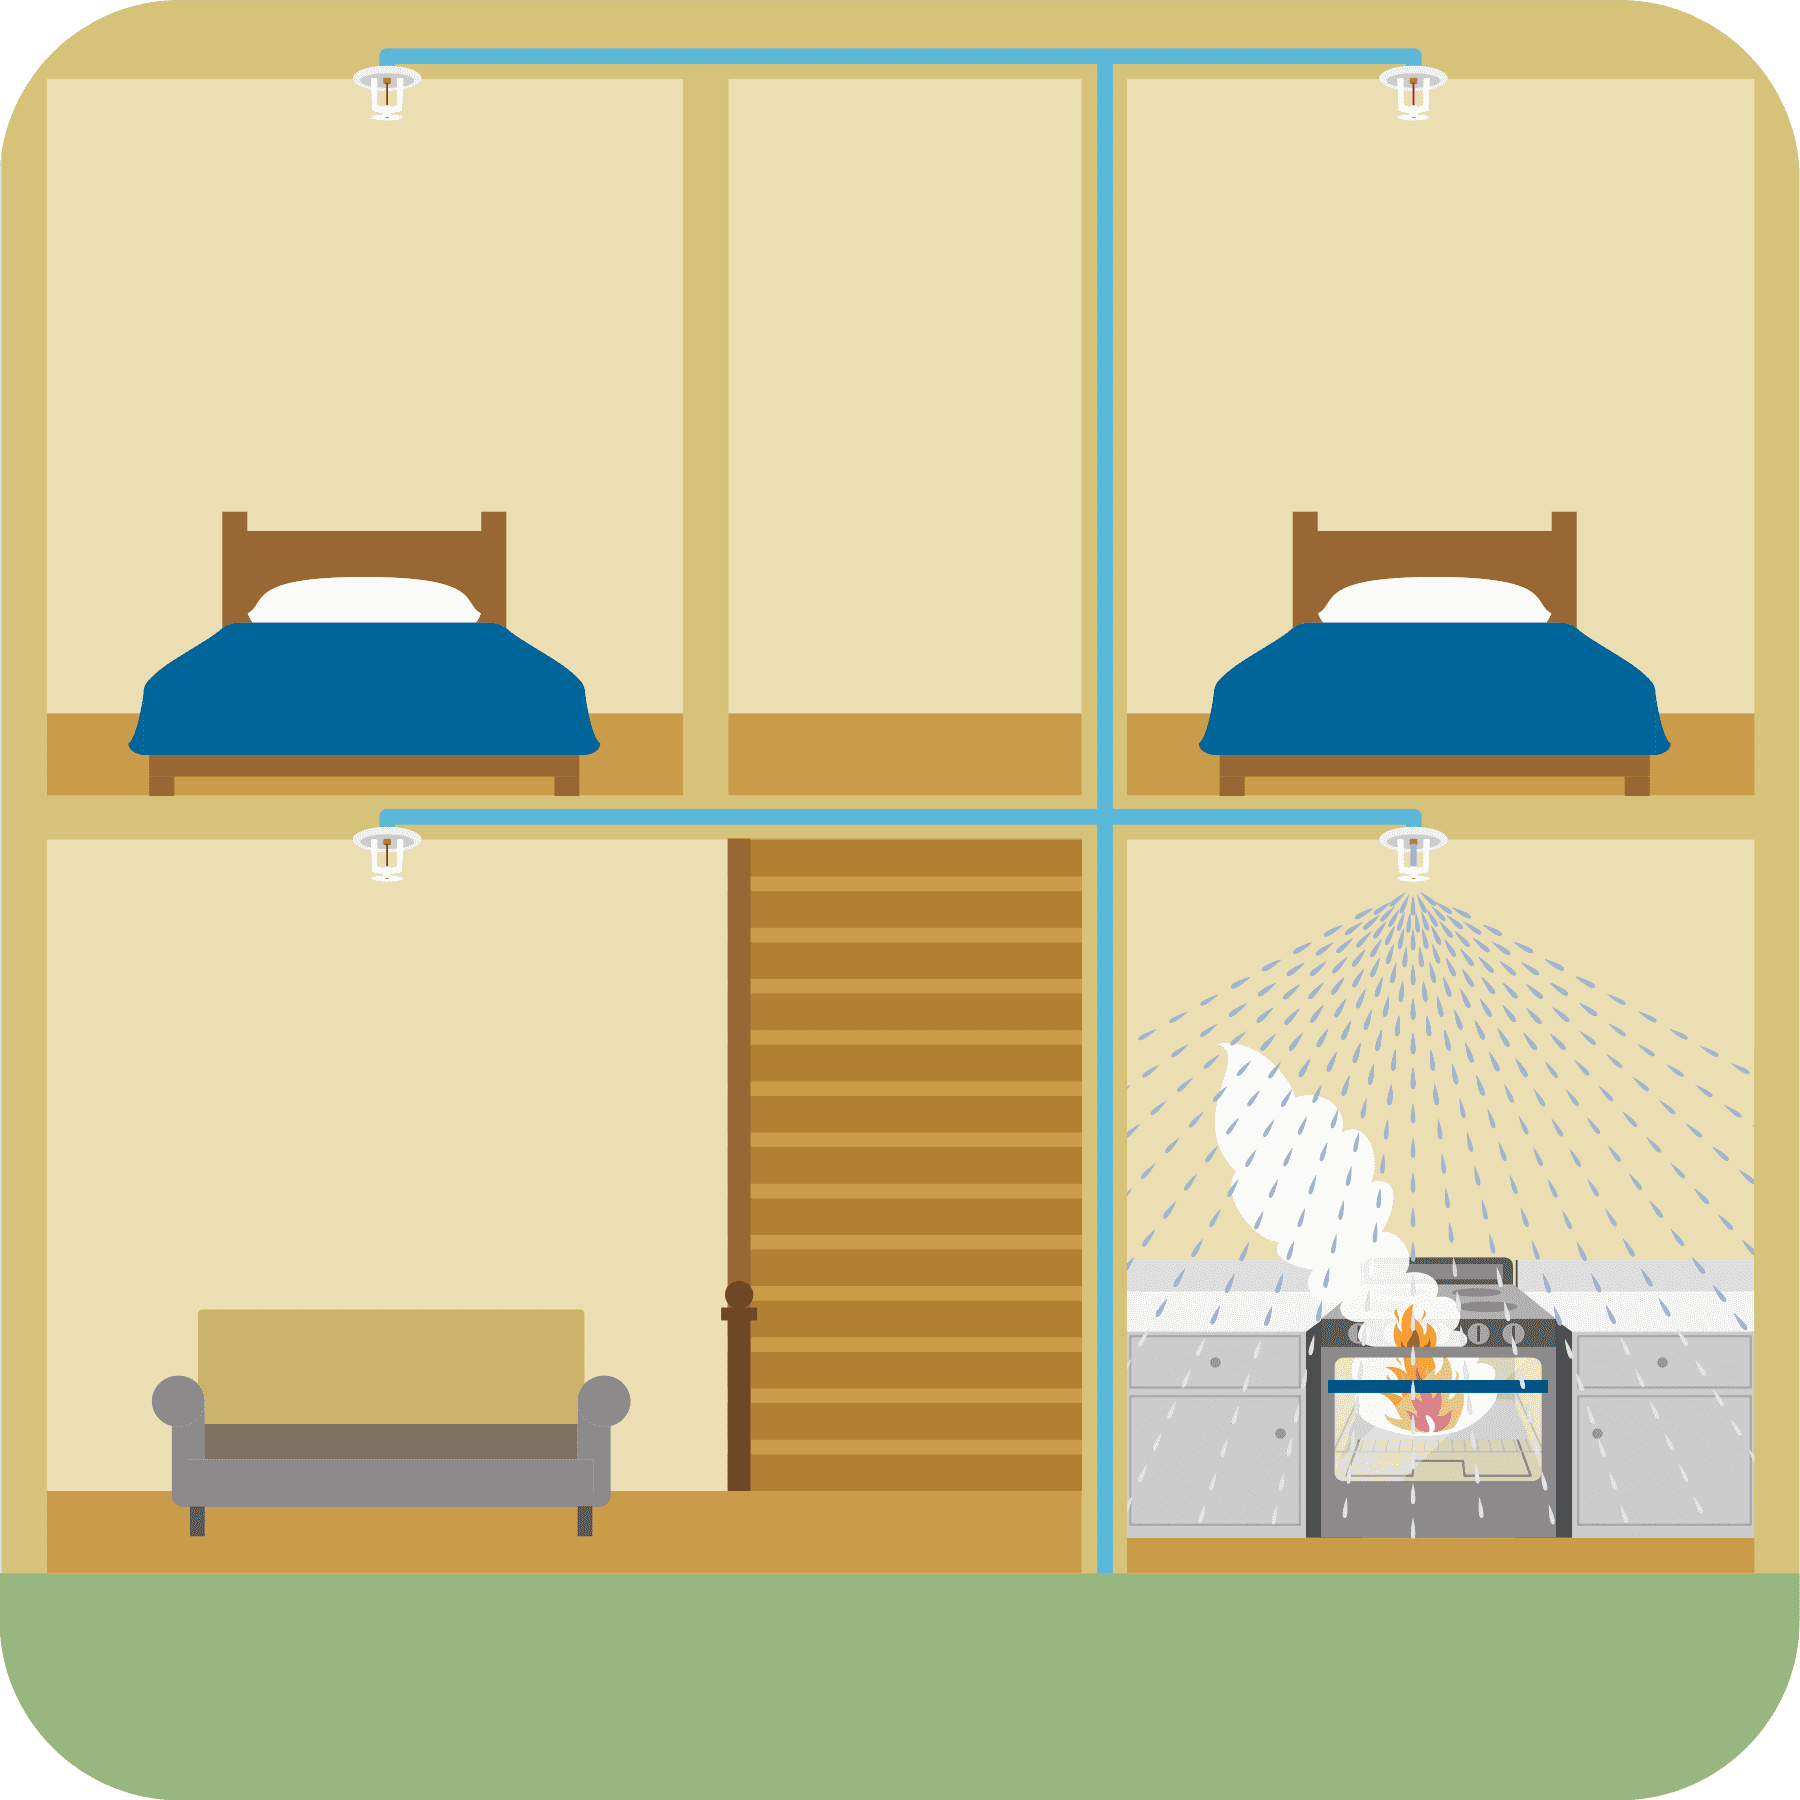 The fire sprinkler in the kitchen activates where the fire is. The sprinklers in the other rooms do not activate.